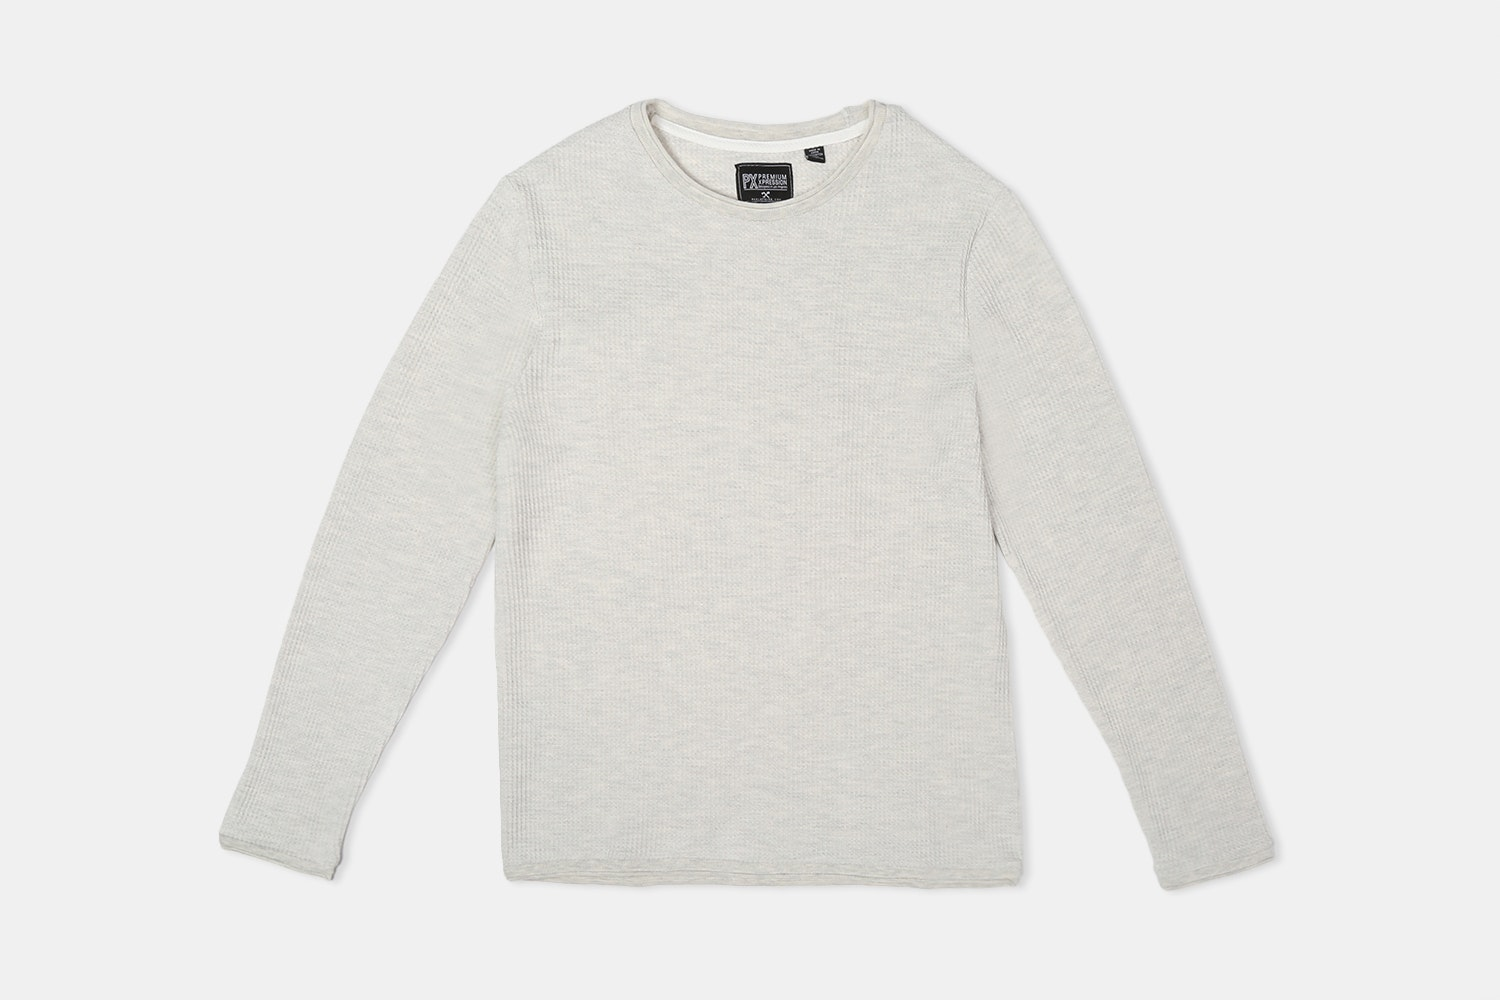 PX Clothing Antoine Waffle-Knit Tops